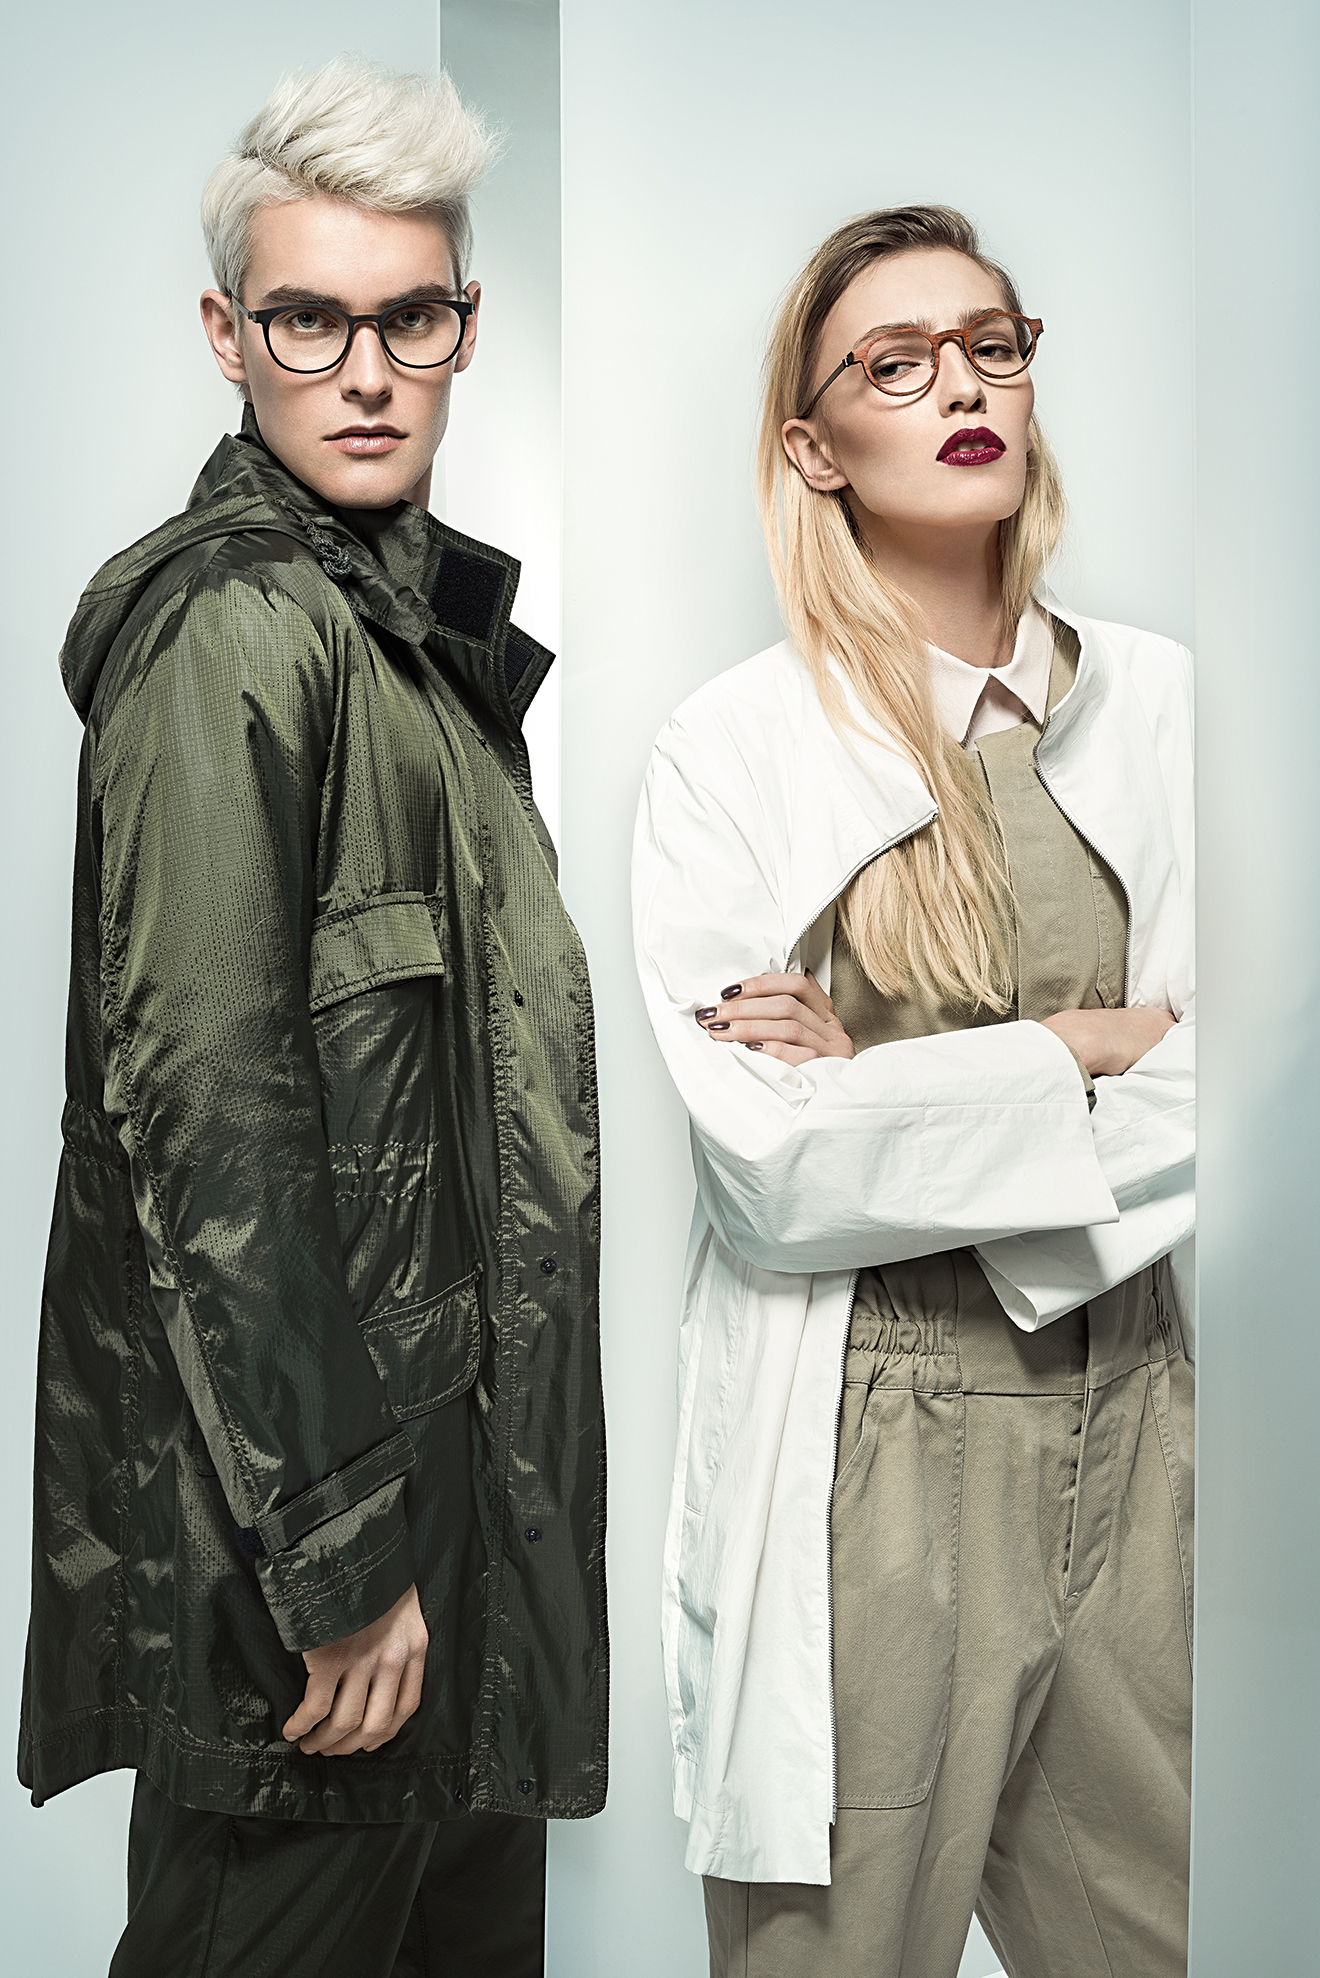 LINDBERG is Yours Forever in DANSK magazine